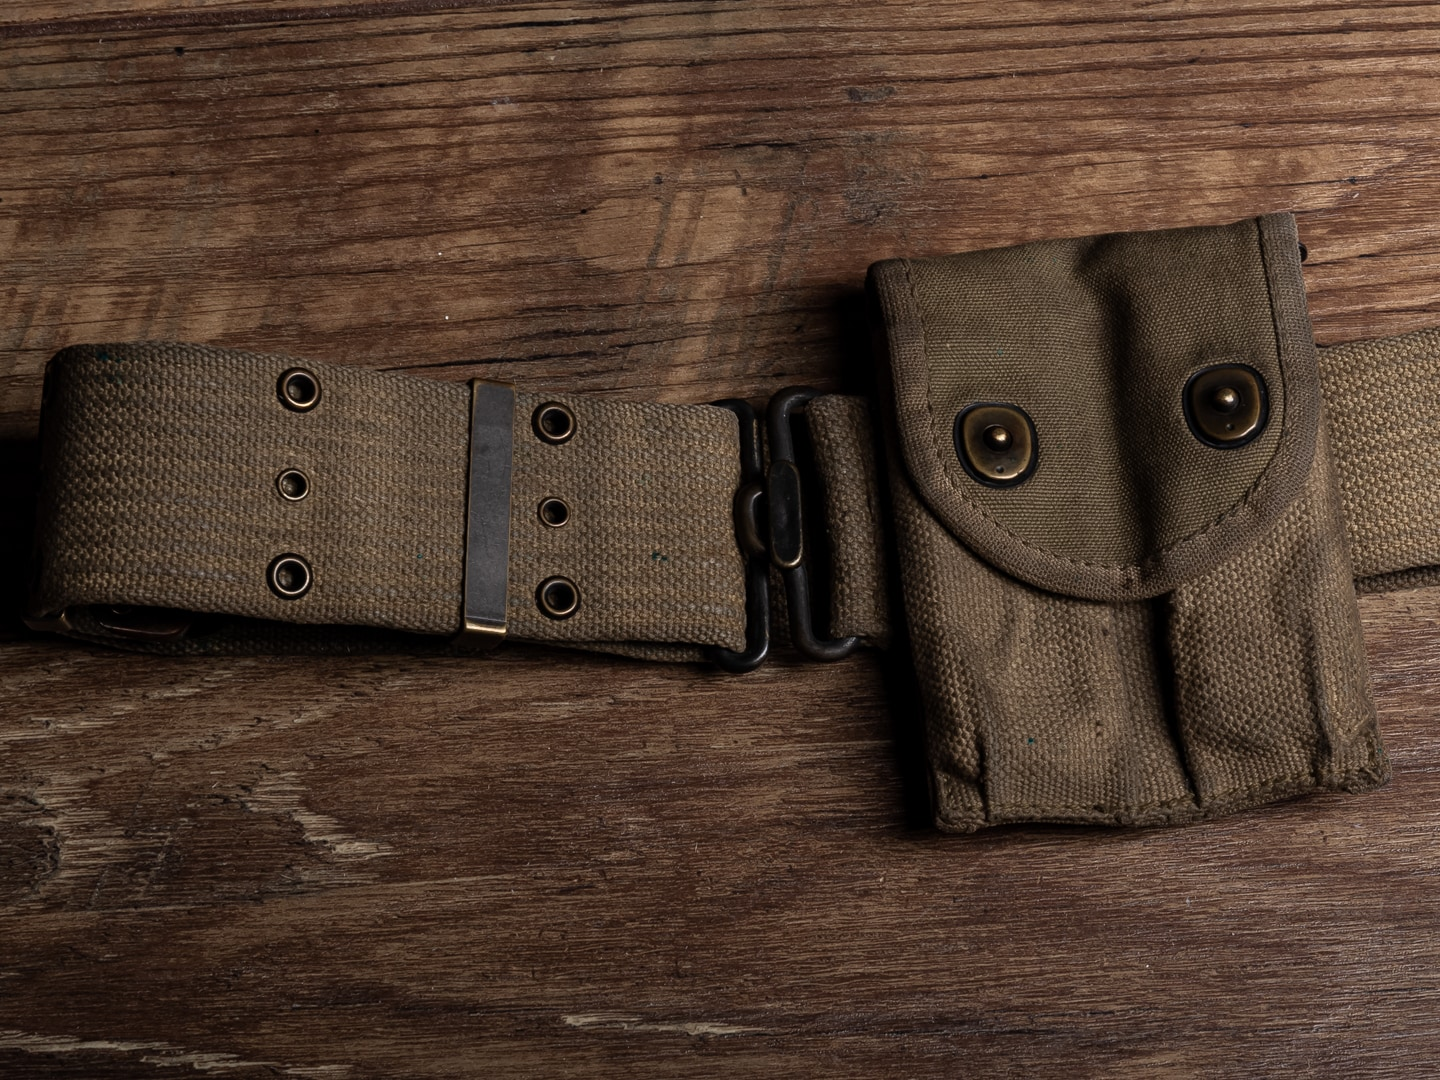 Included are a worn M1916 style canvas pistol belt with a magazine pouch.